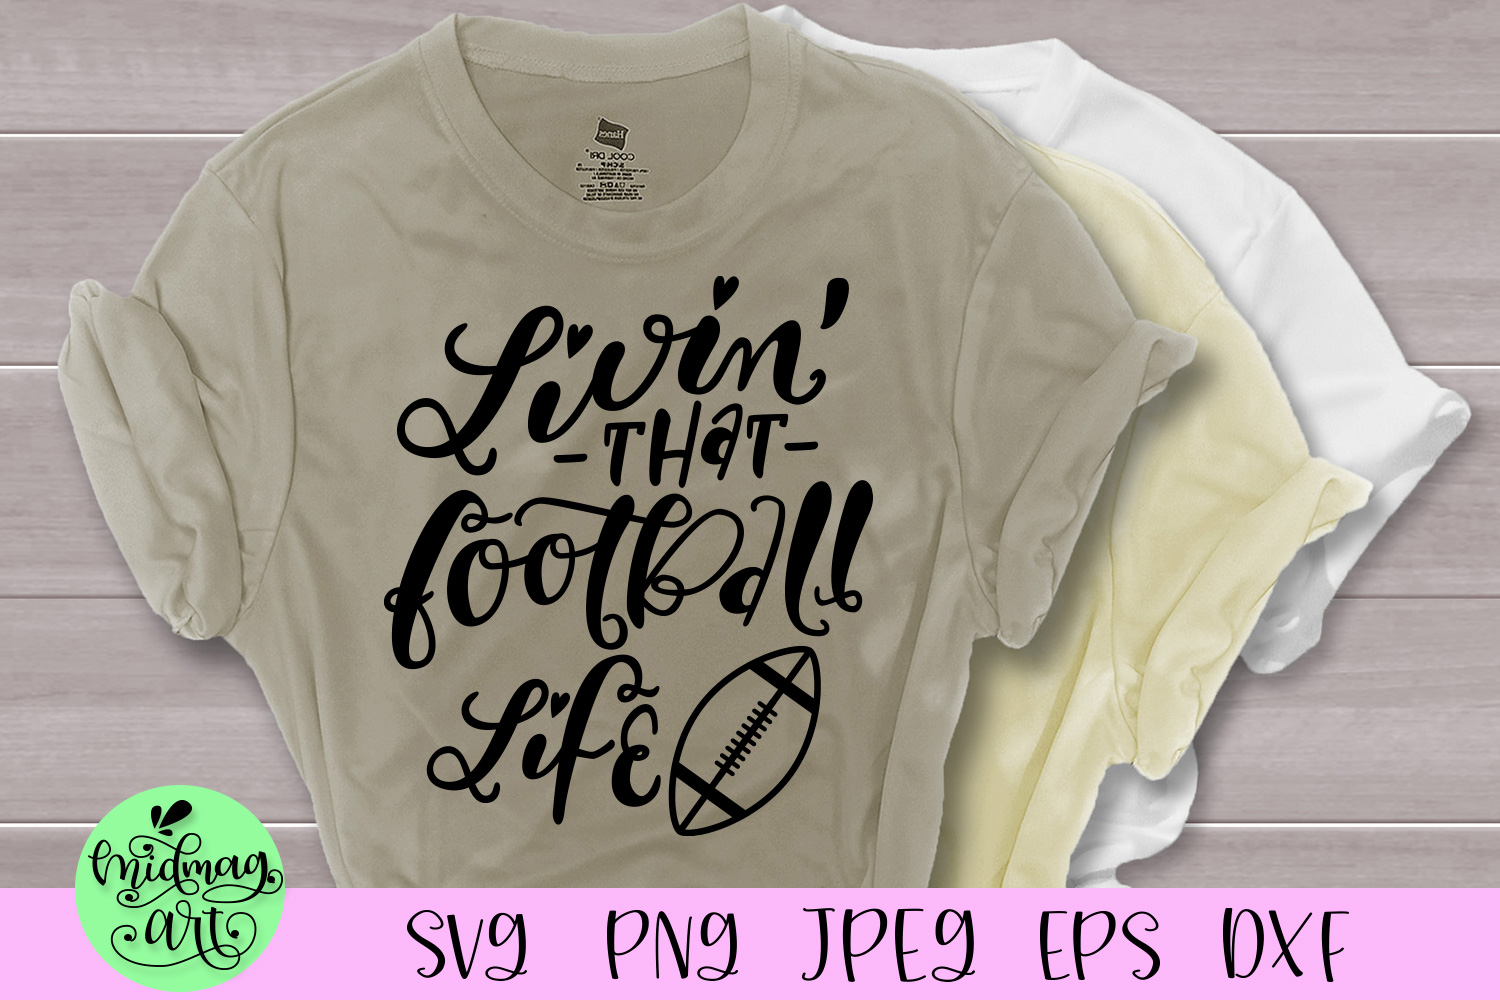 Livin that football life svg, football svg, fall svg example image 1